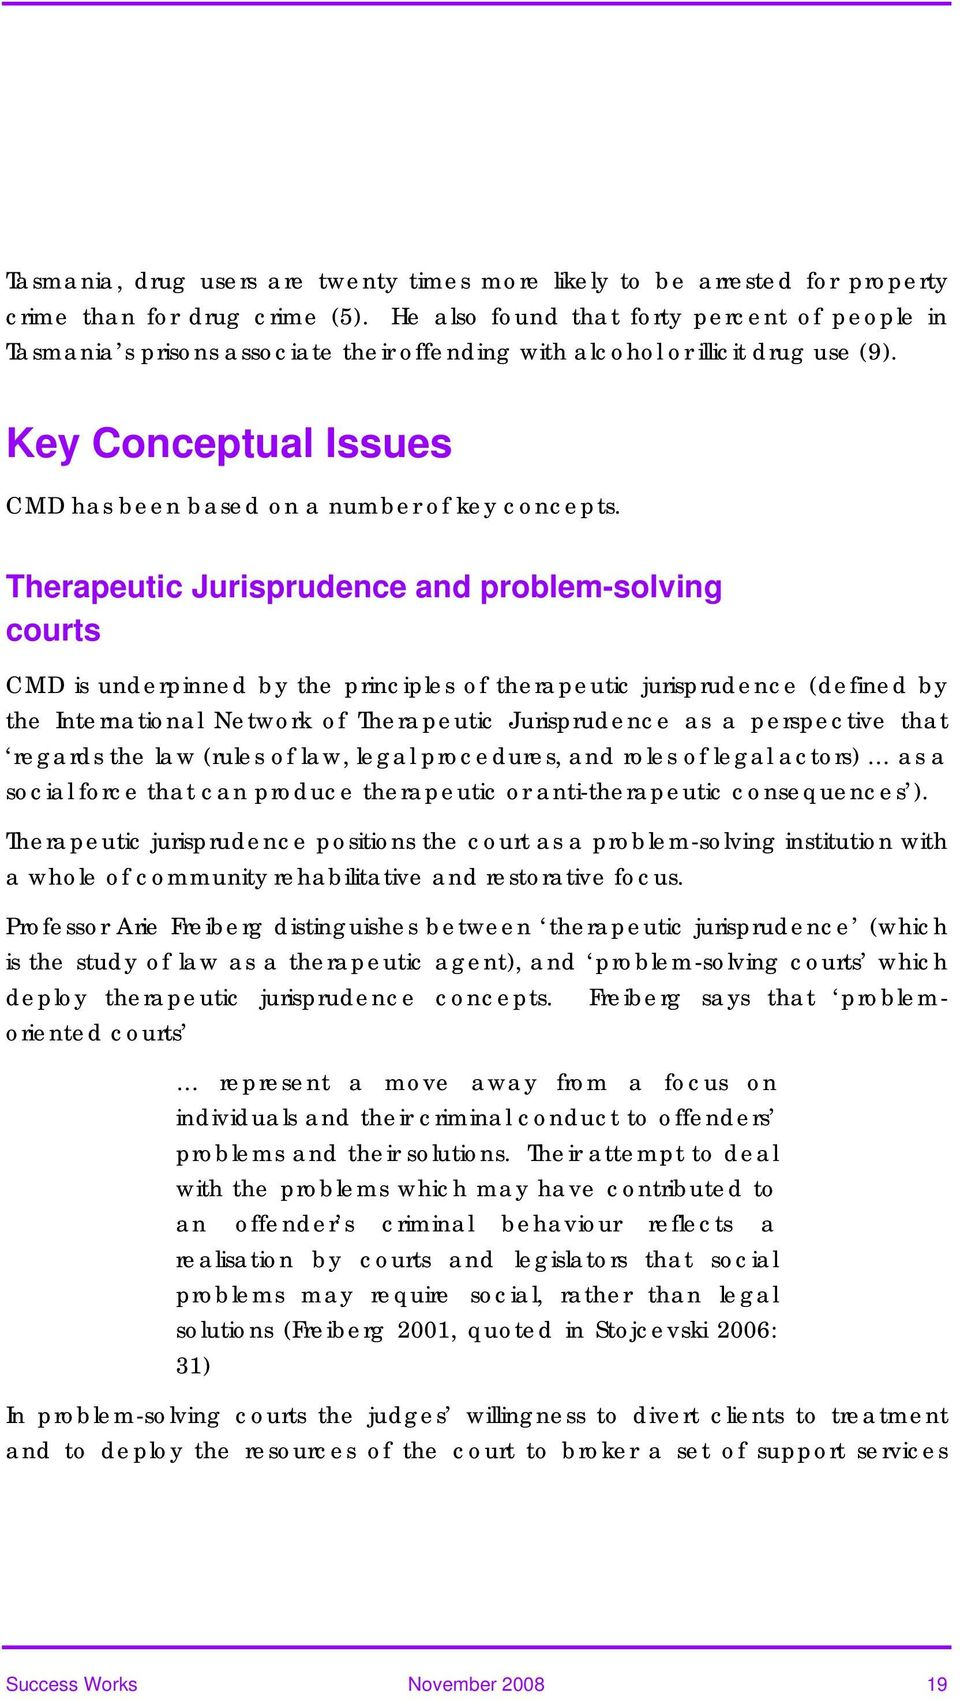 Therapeutic Jurisprudence and problem-solving courts CMD is underpinned by the principles of therapeutic jurisprudence (defined by the International Network of Therapeutic Jurisprudence as a